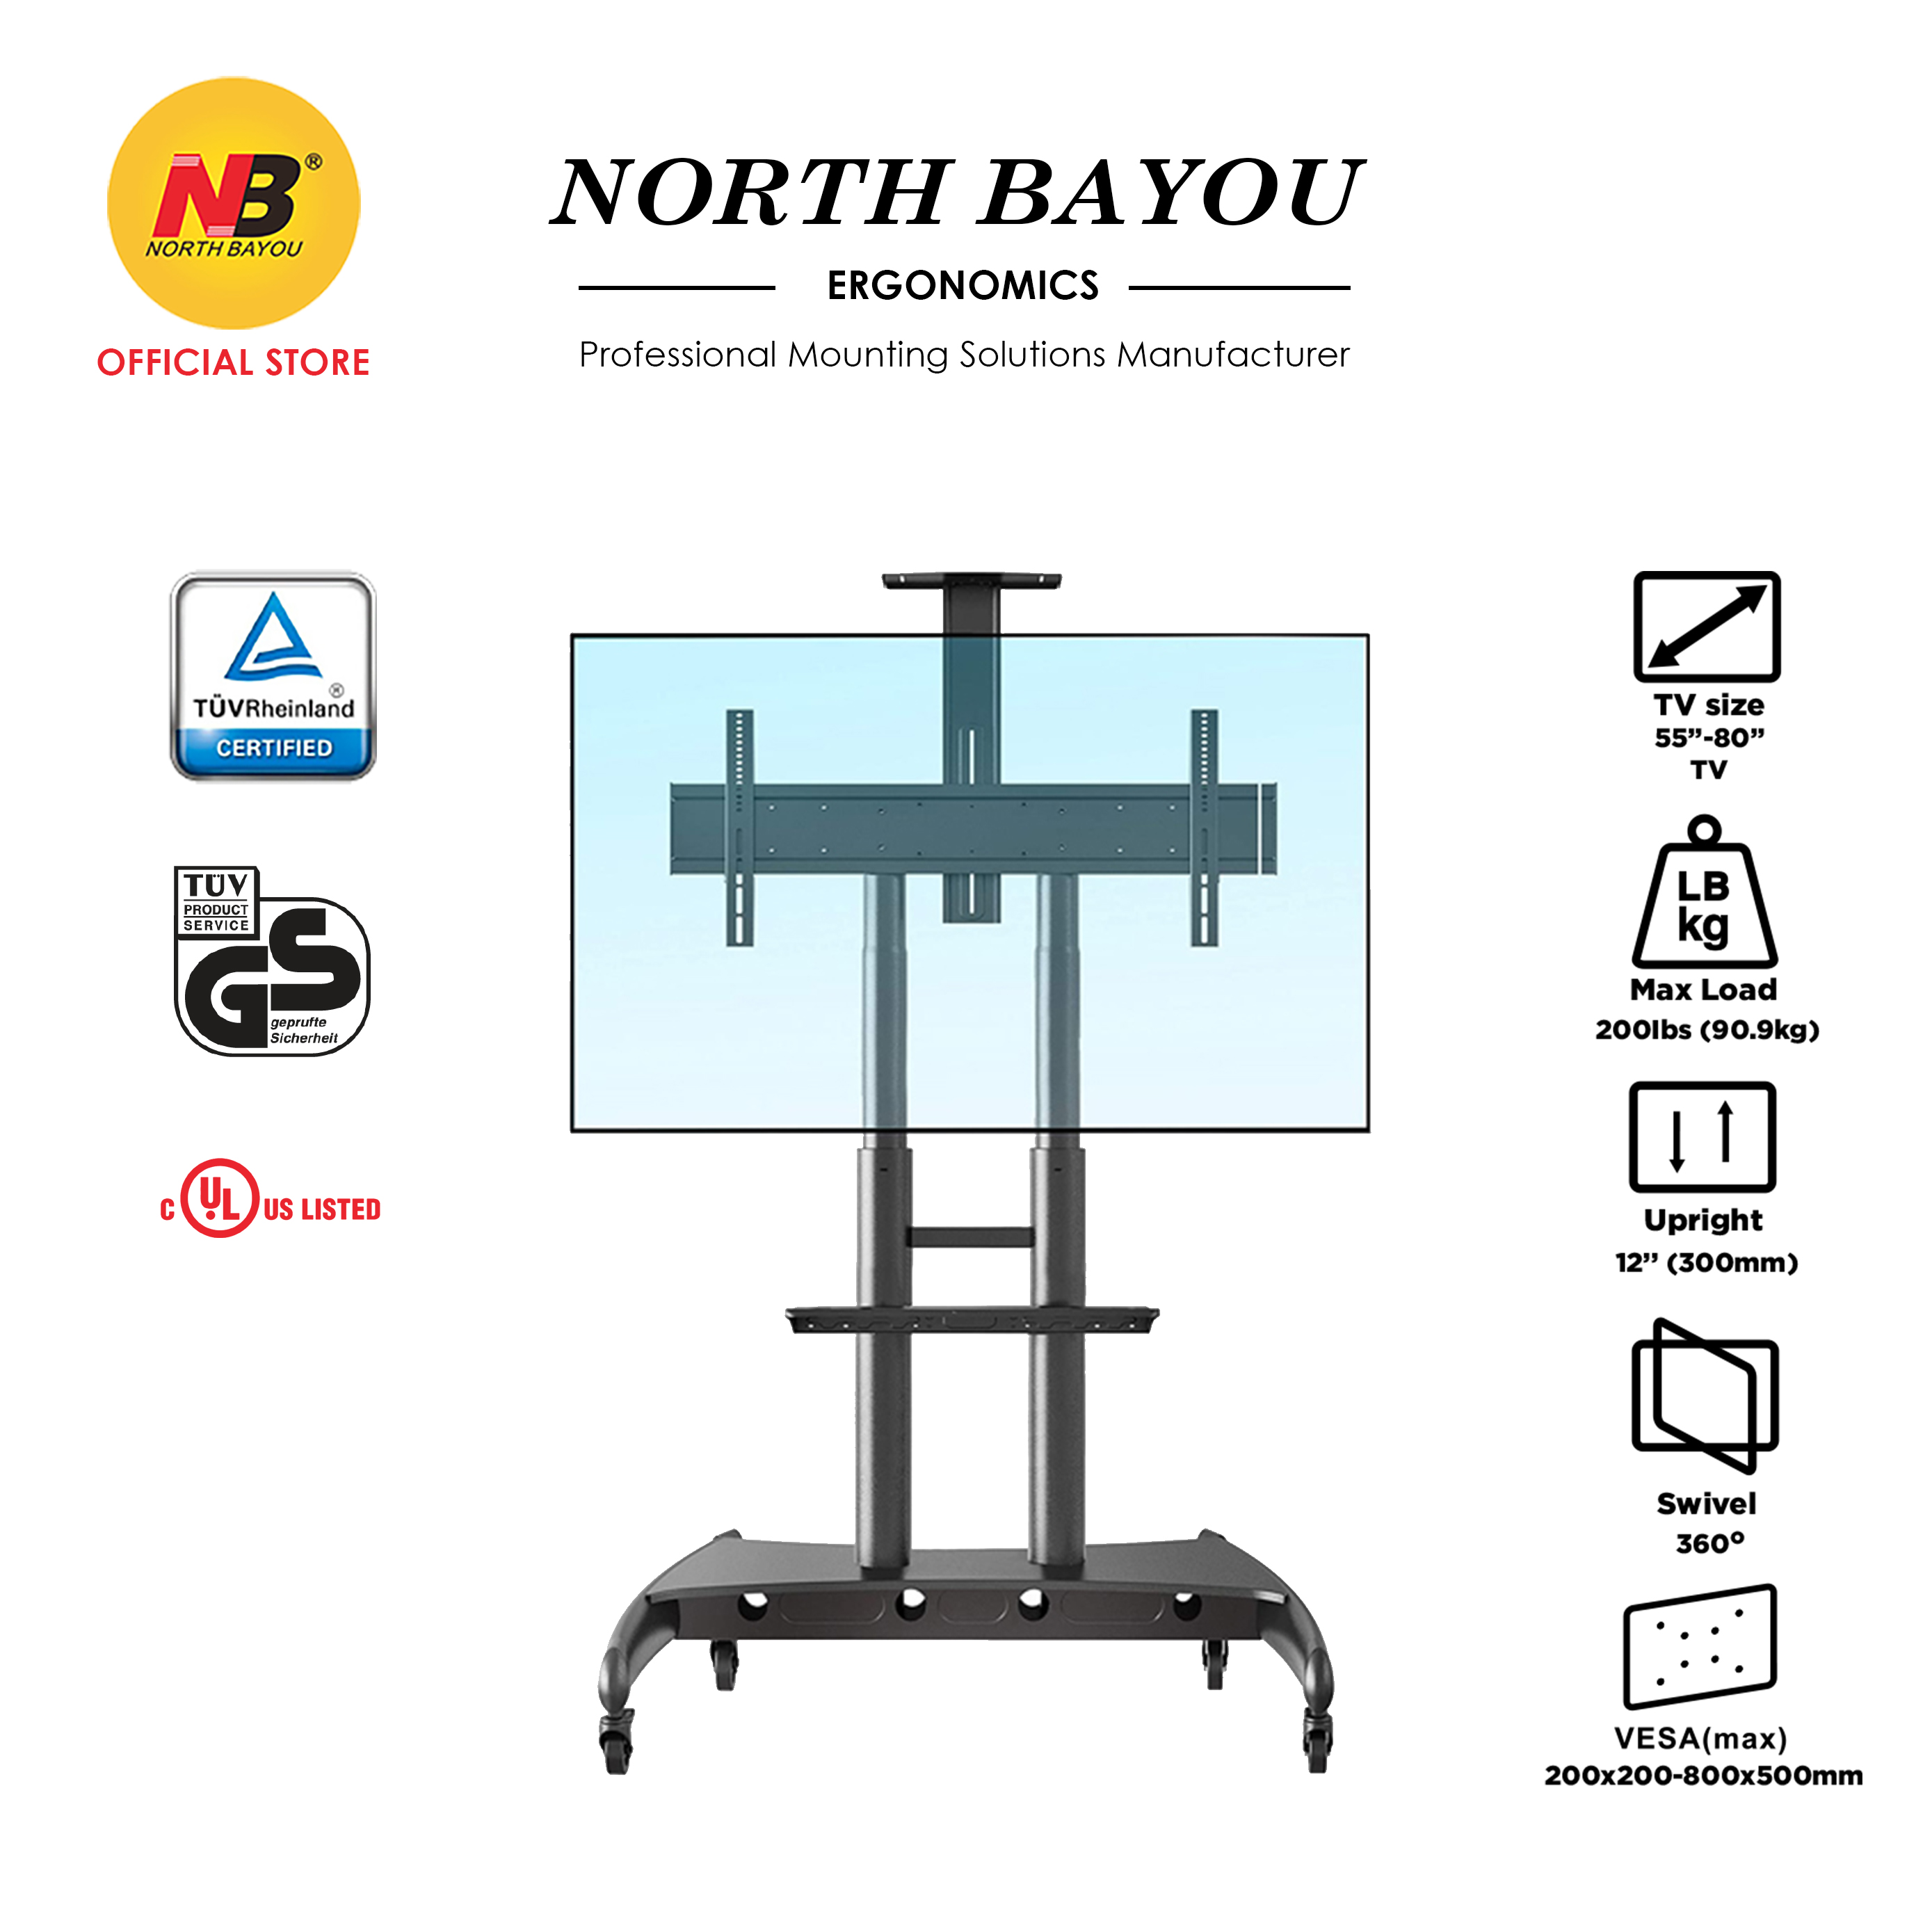 NB North Bayou 55 to 80 Inch AVA1800-70-1P Large Huge Portable Moving TV Troley Trolley AVA1800 Stand Mount Bracket